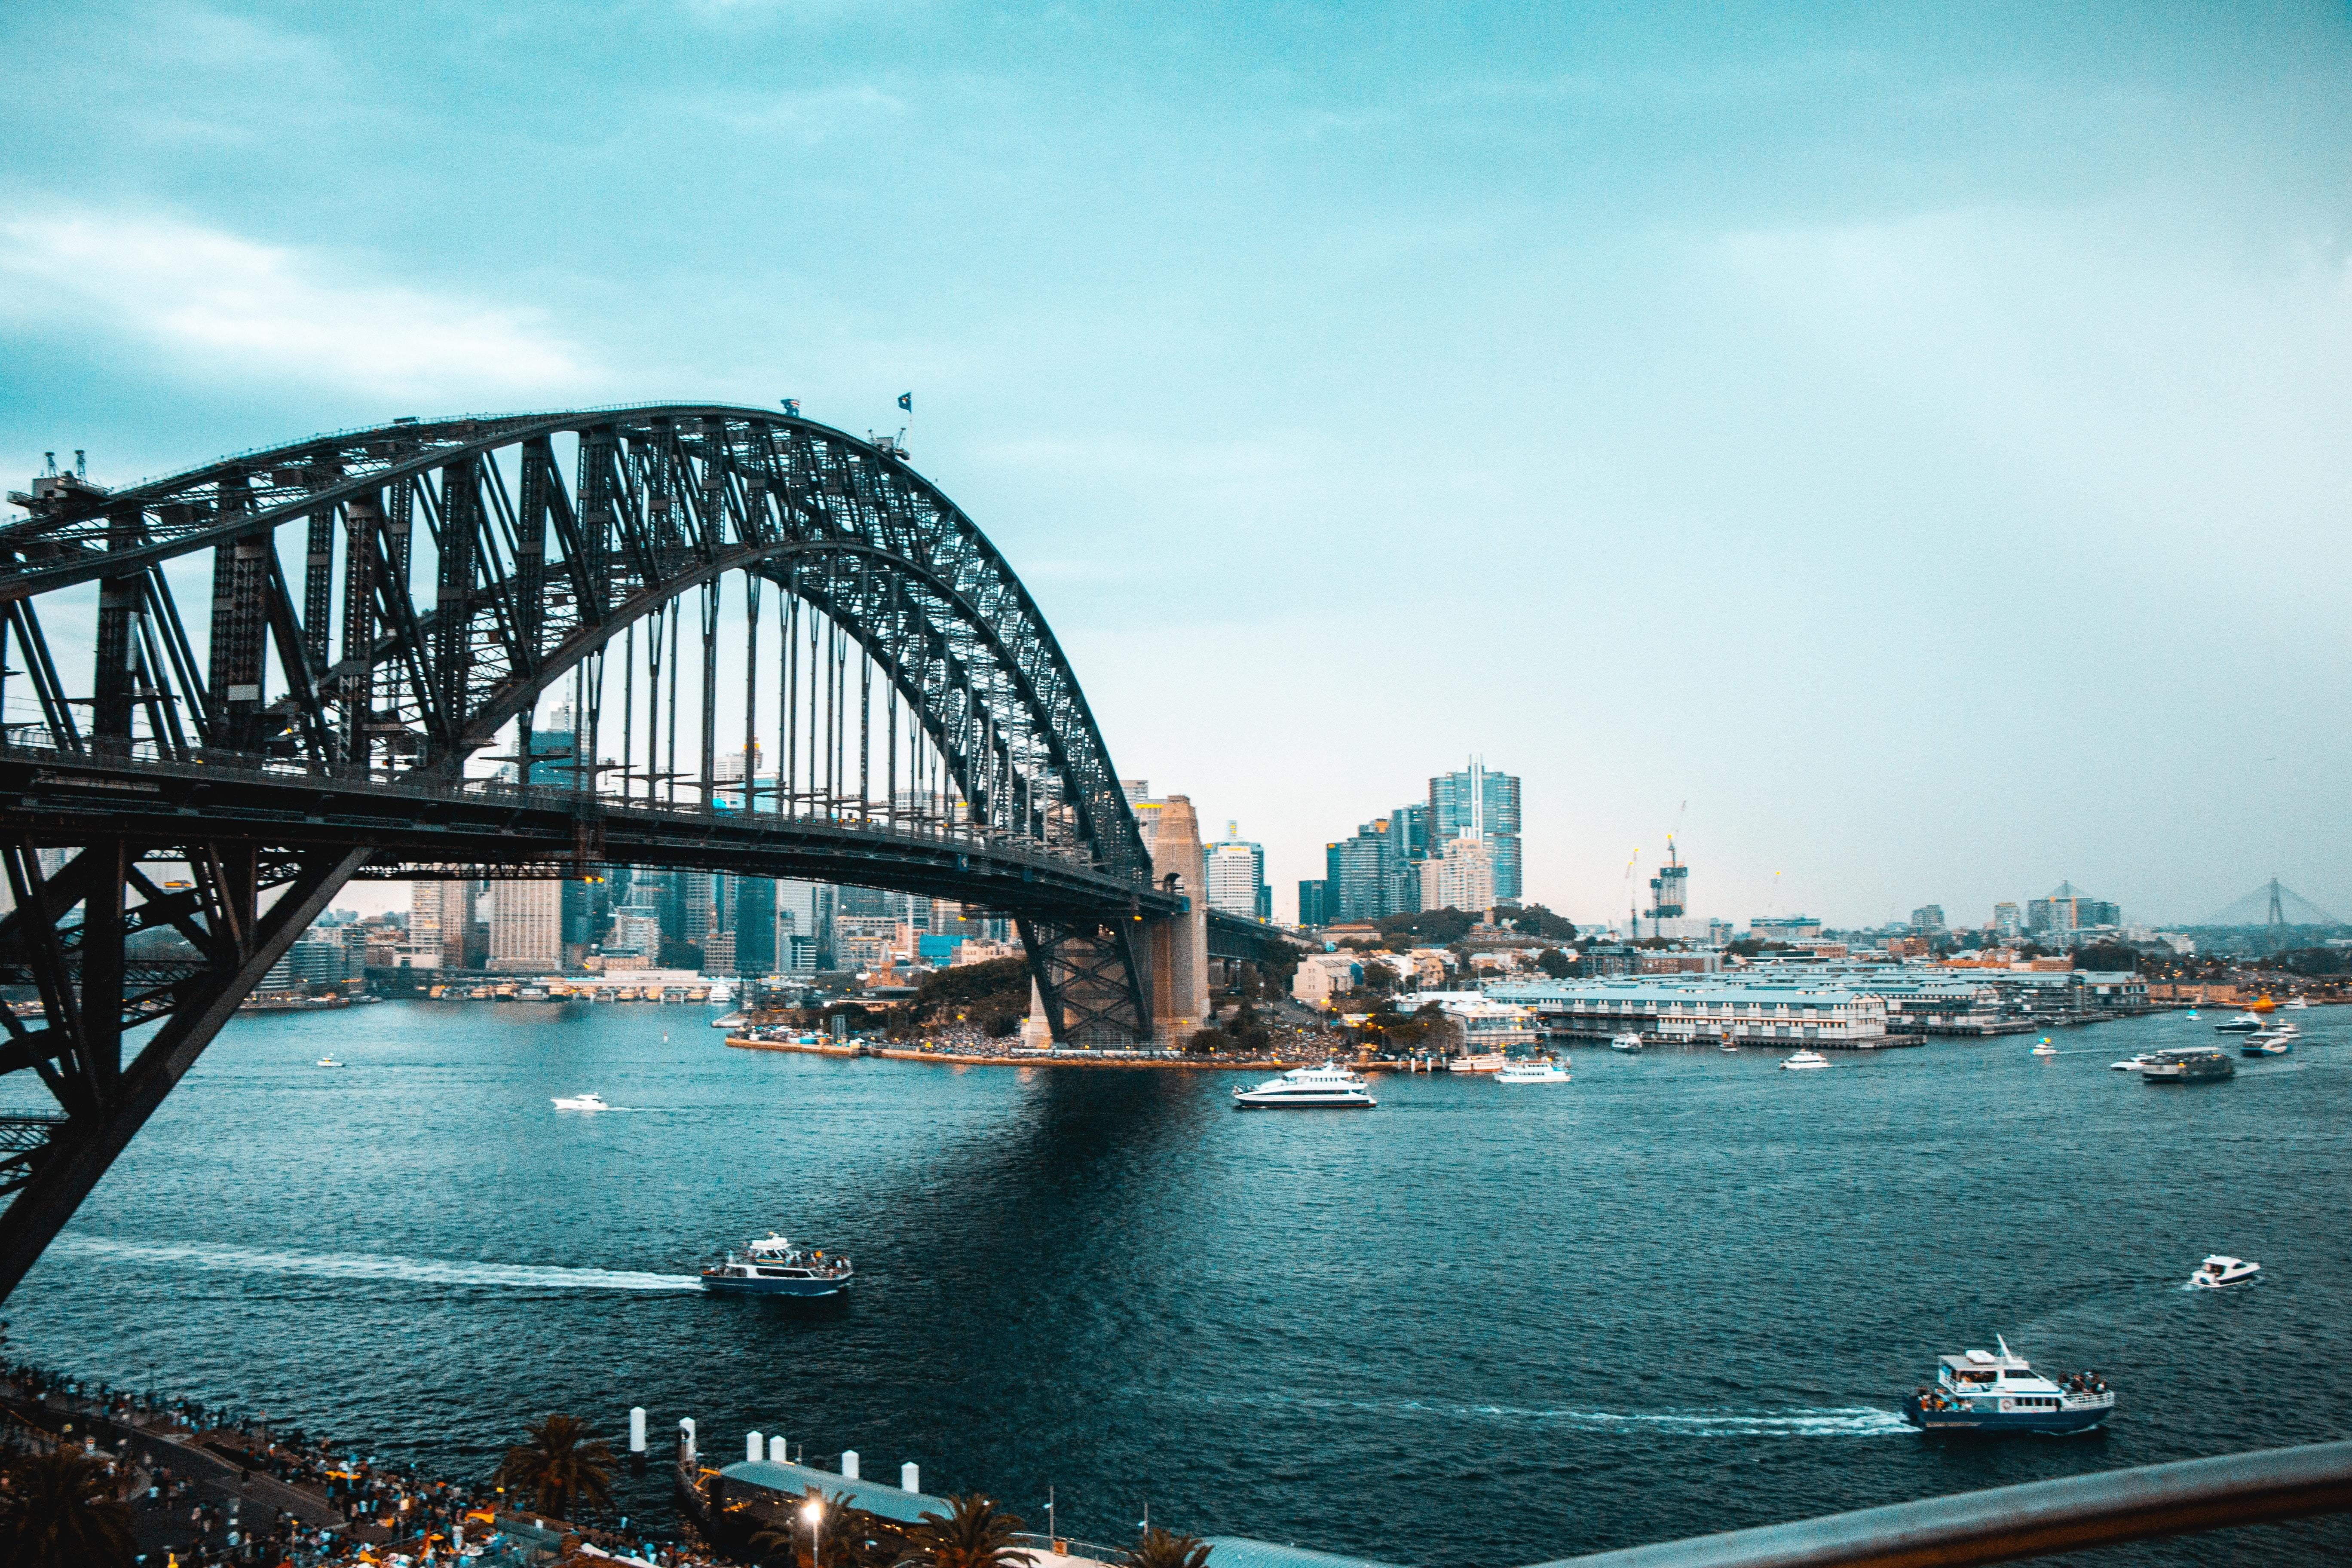 parts of Sydney, the city pictured here, are creating initiatives to help city residents manage the rising temperatures due to climate change